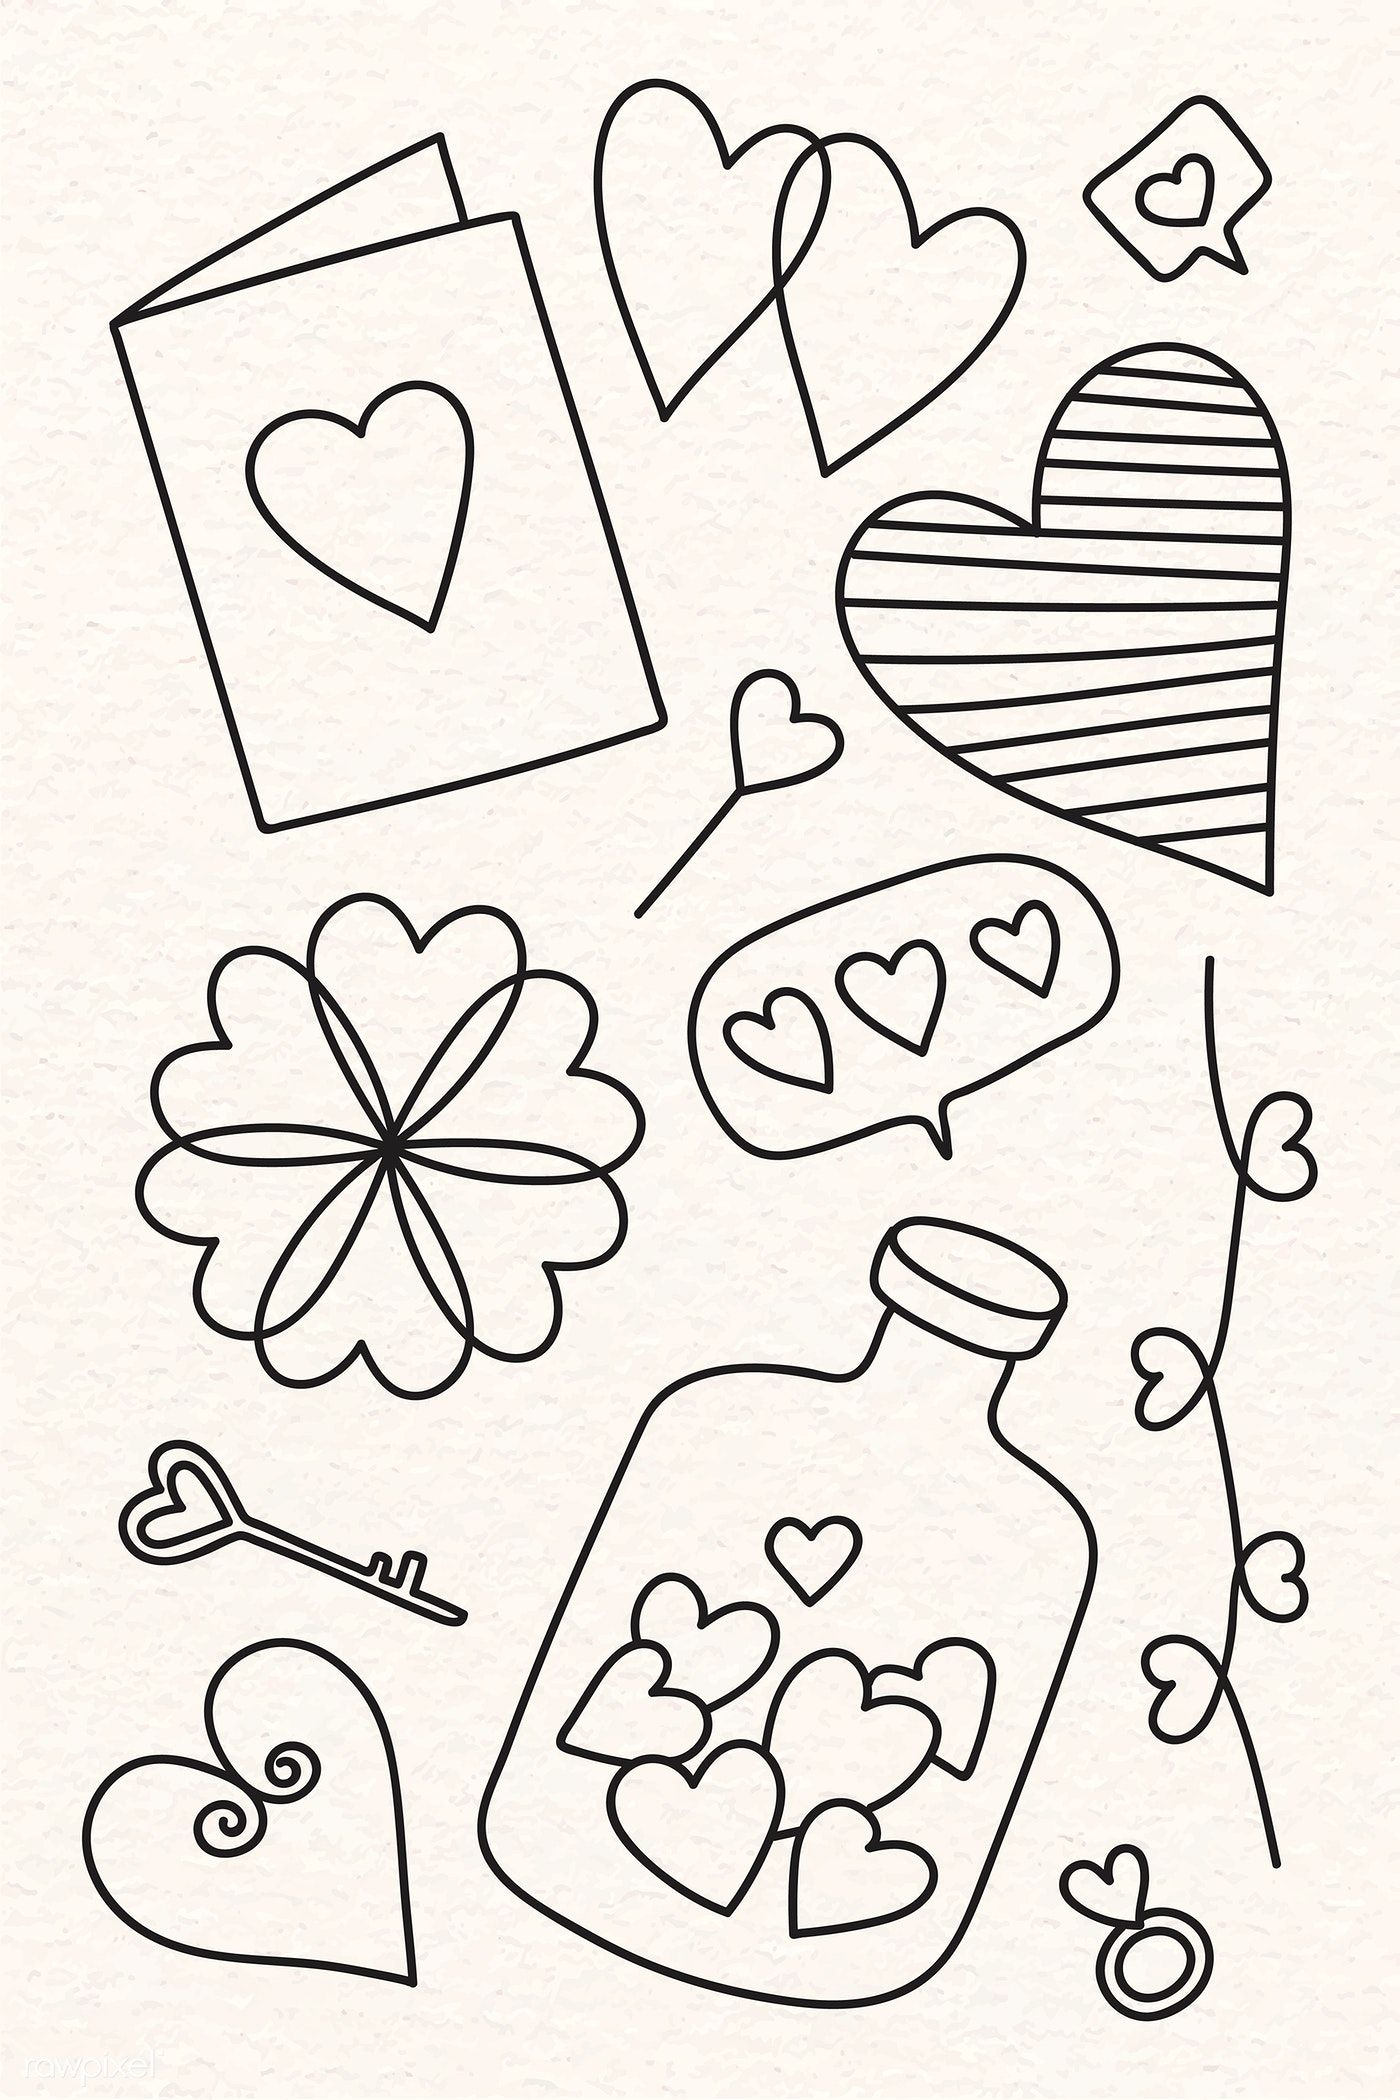 Download Premium Vector Of Hand Drawn Love And Valentine S Day Doodle Valentines Day Drawing Valentines Day Doodles Love Doodles